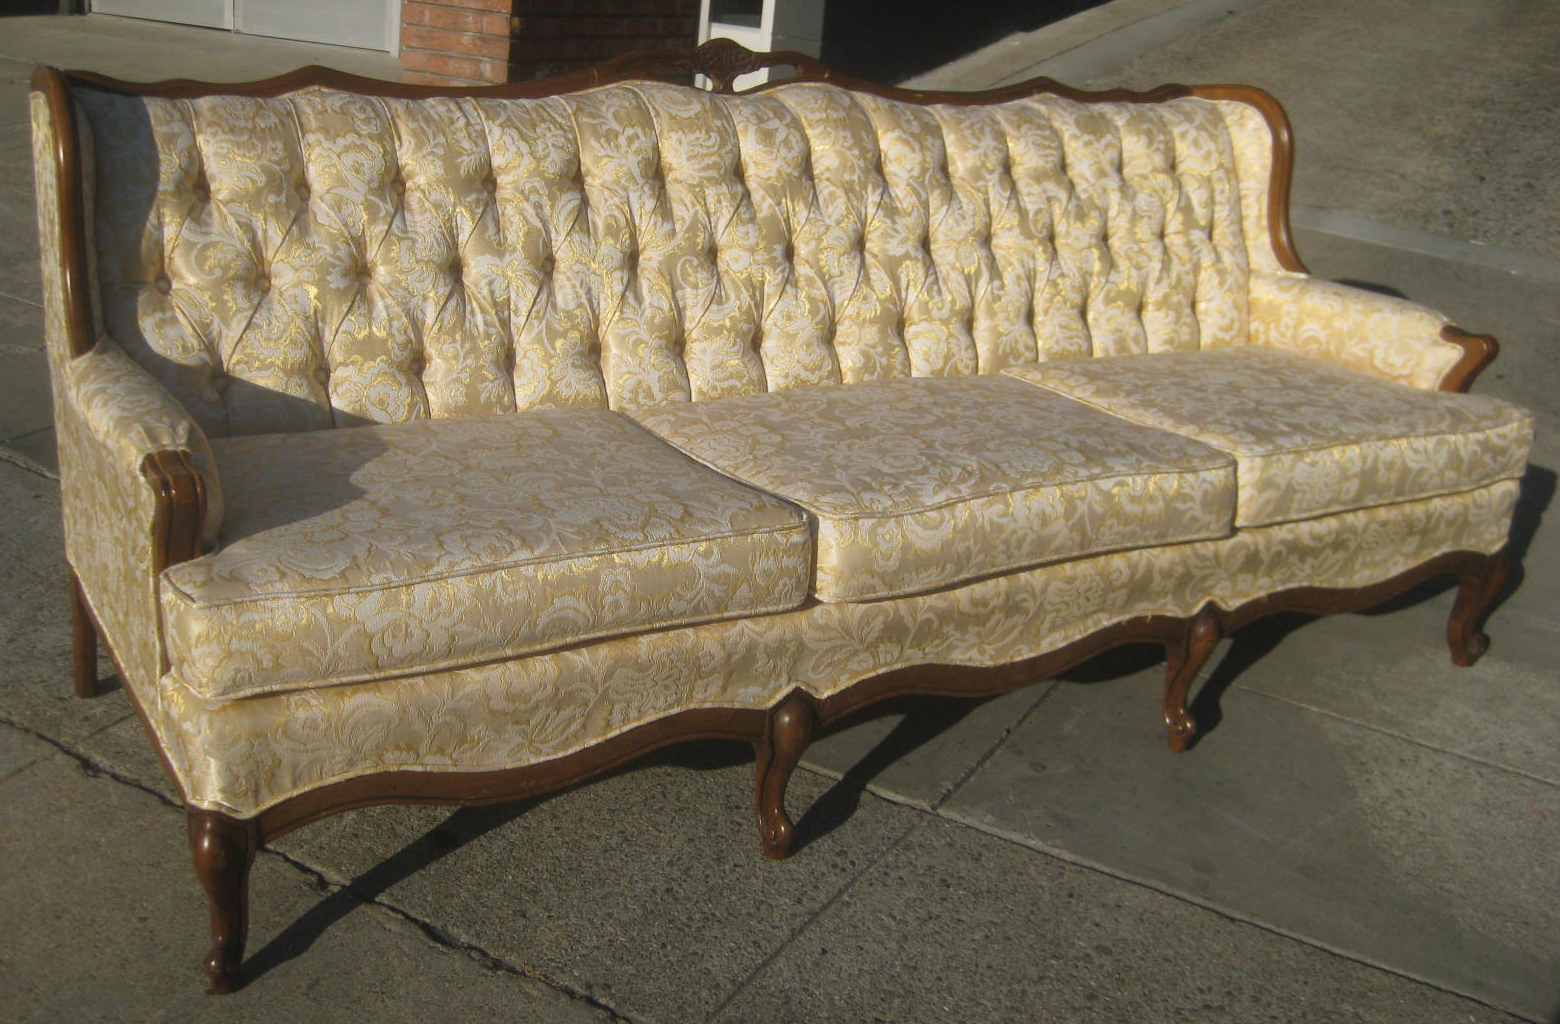 lounge couch remodel french leaf sofa w trend ivory ornate fabric longue chaise pin about in gold crystals nice style